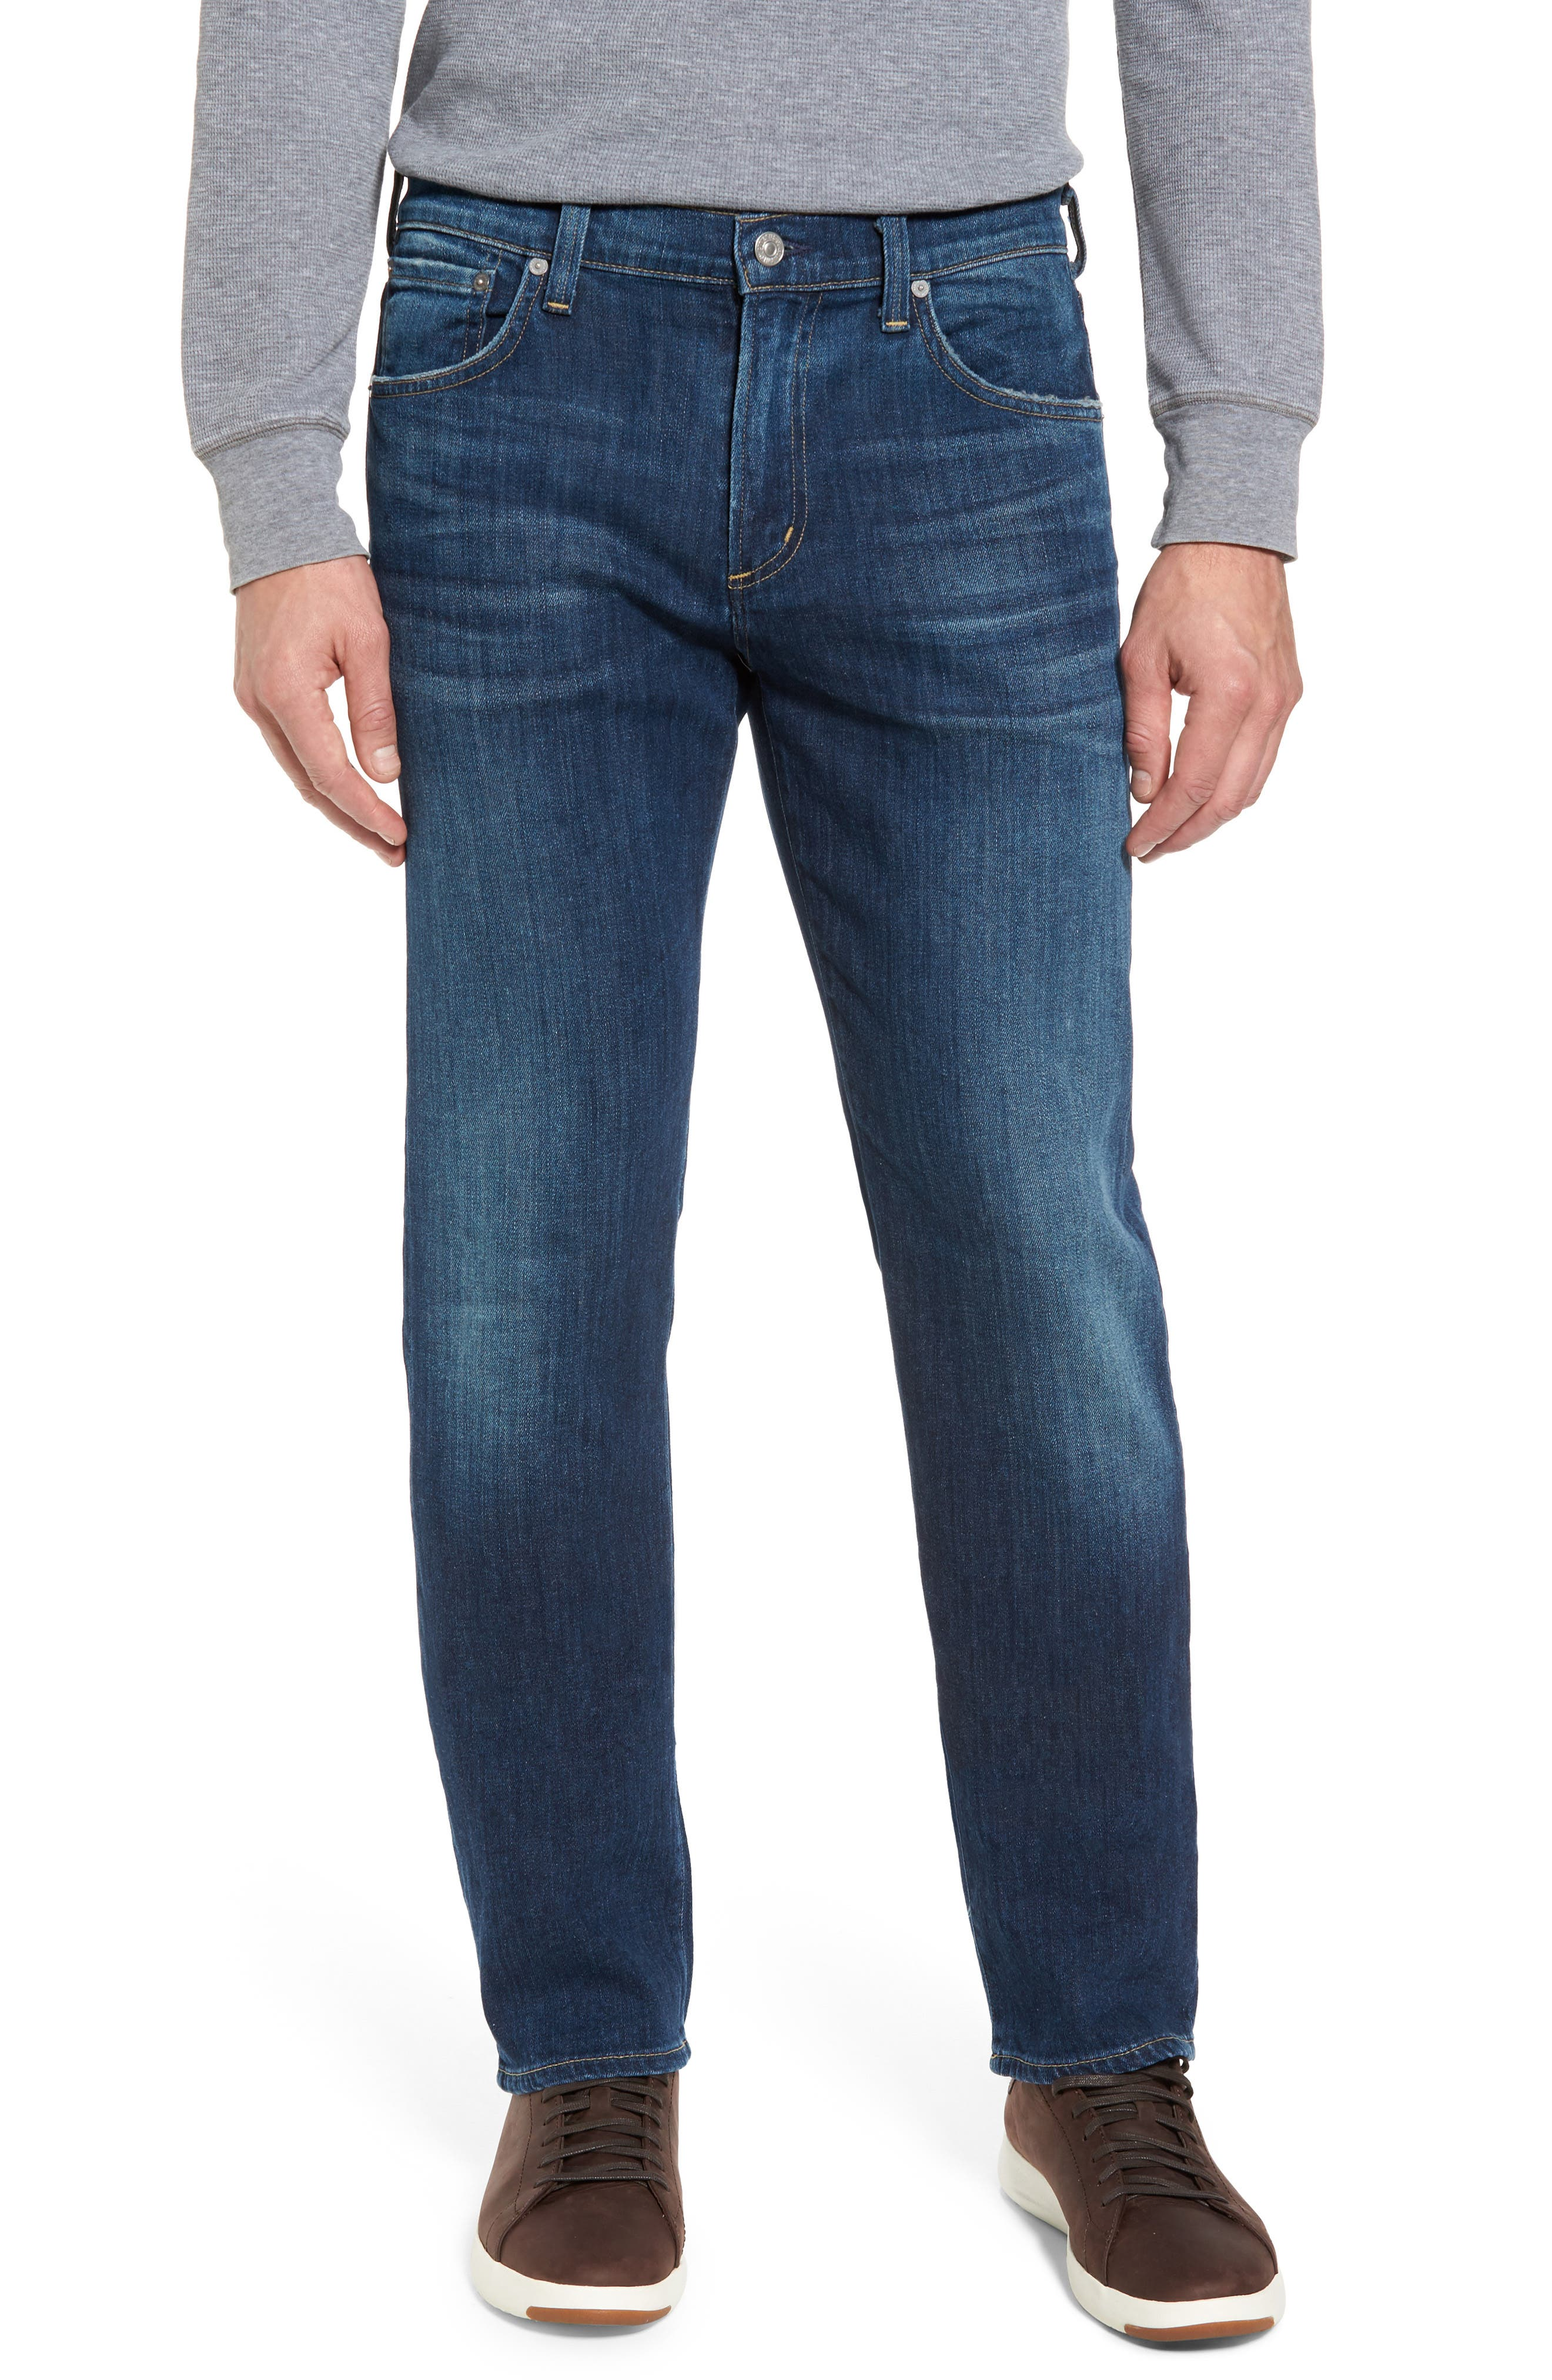 Sid Straight Fit Jeans,                             Main thumbnail 1, color,                             410